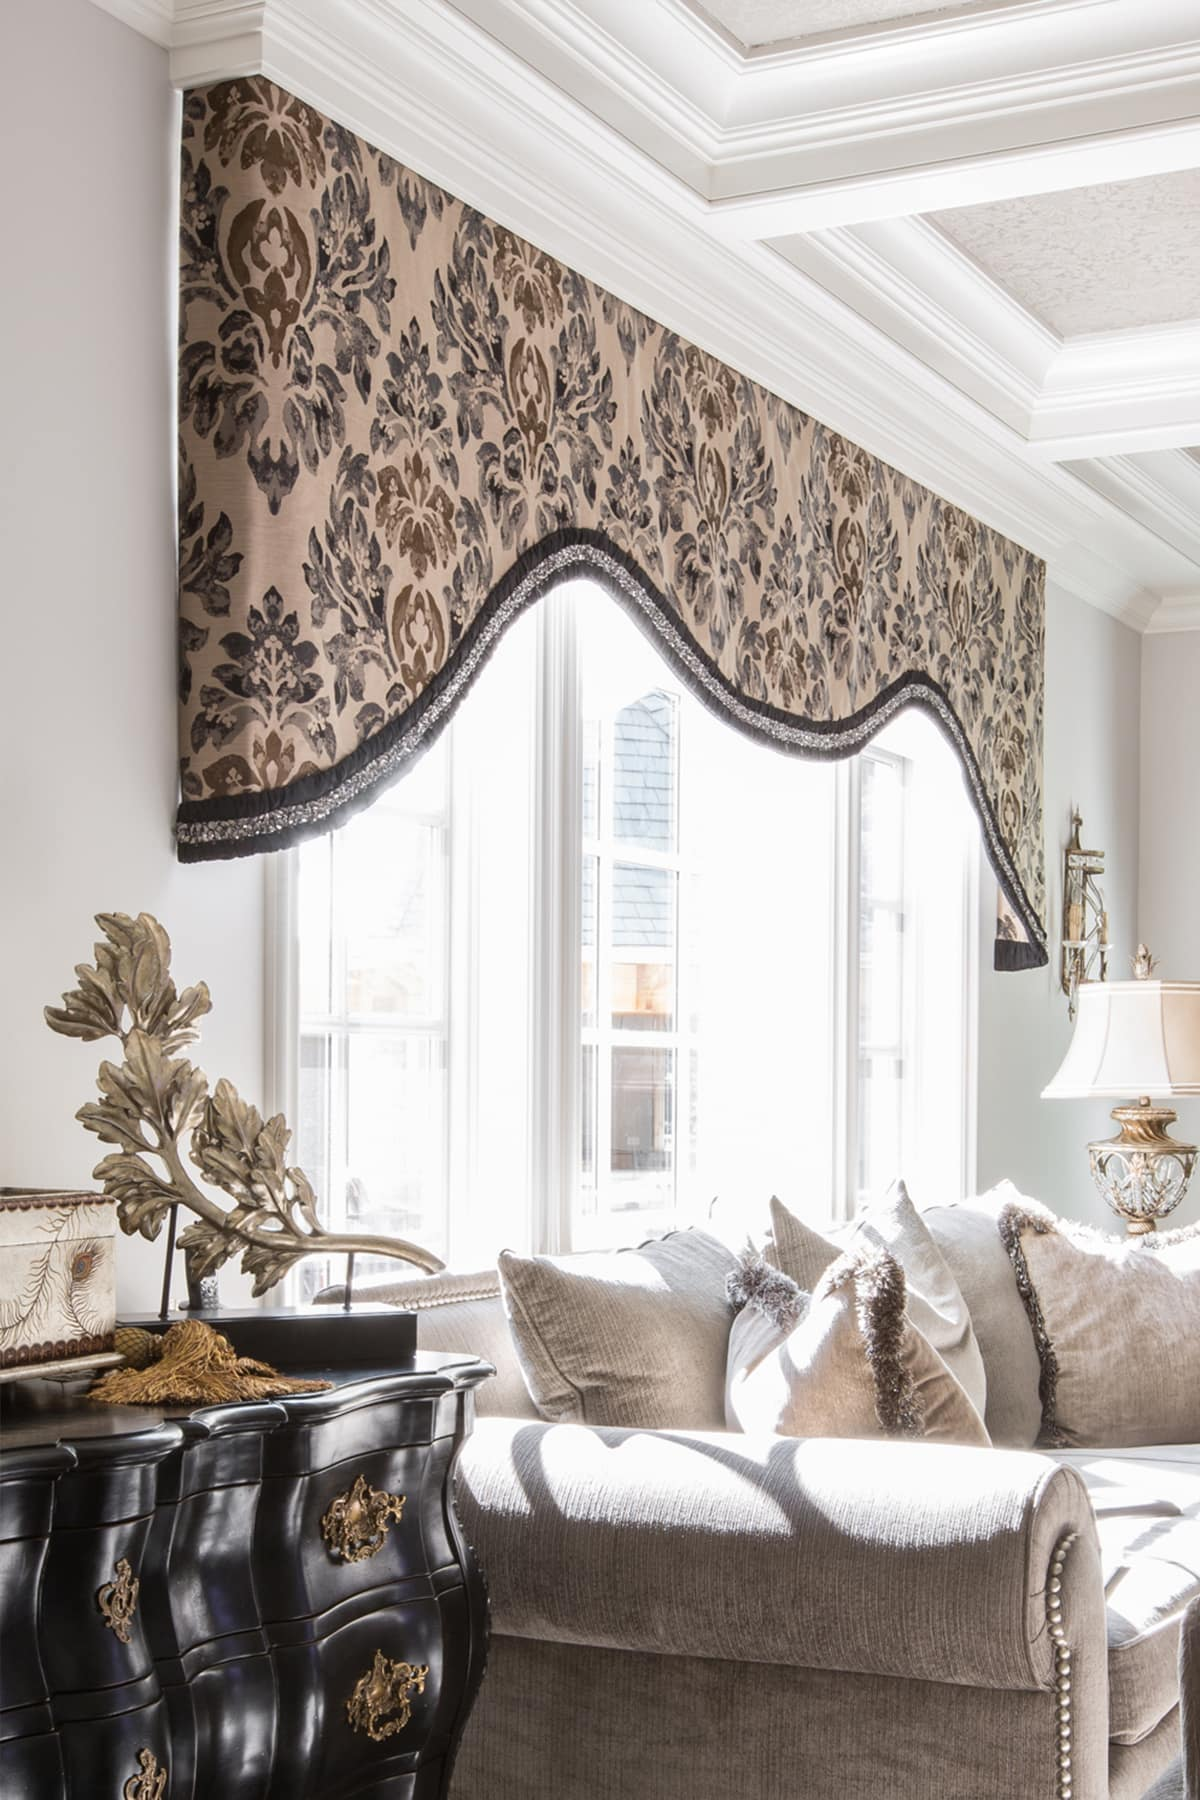 Custom Window Treatments To Fit Your Style Linly Designs